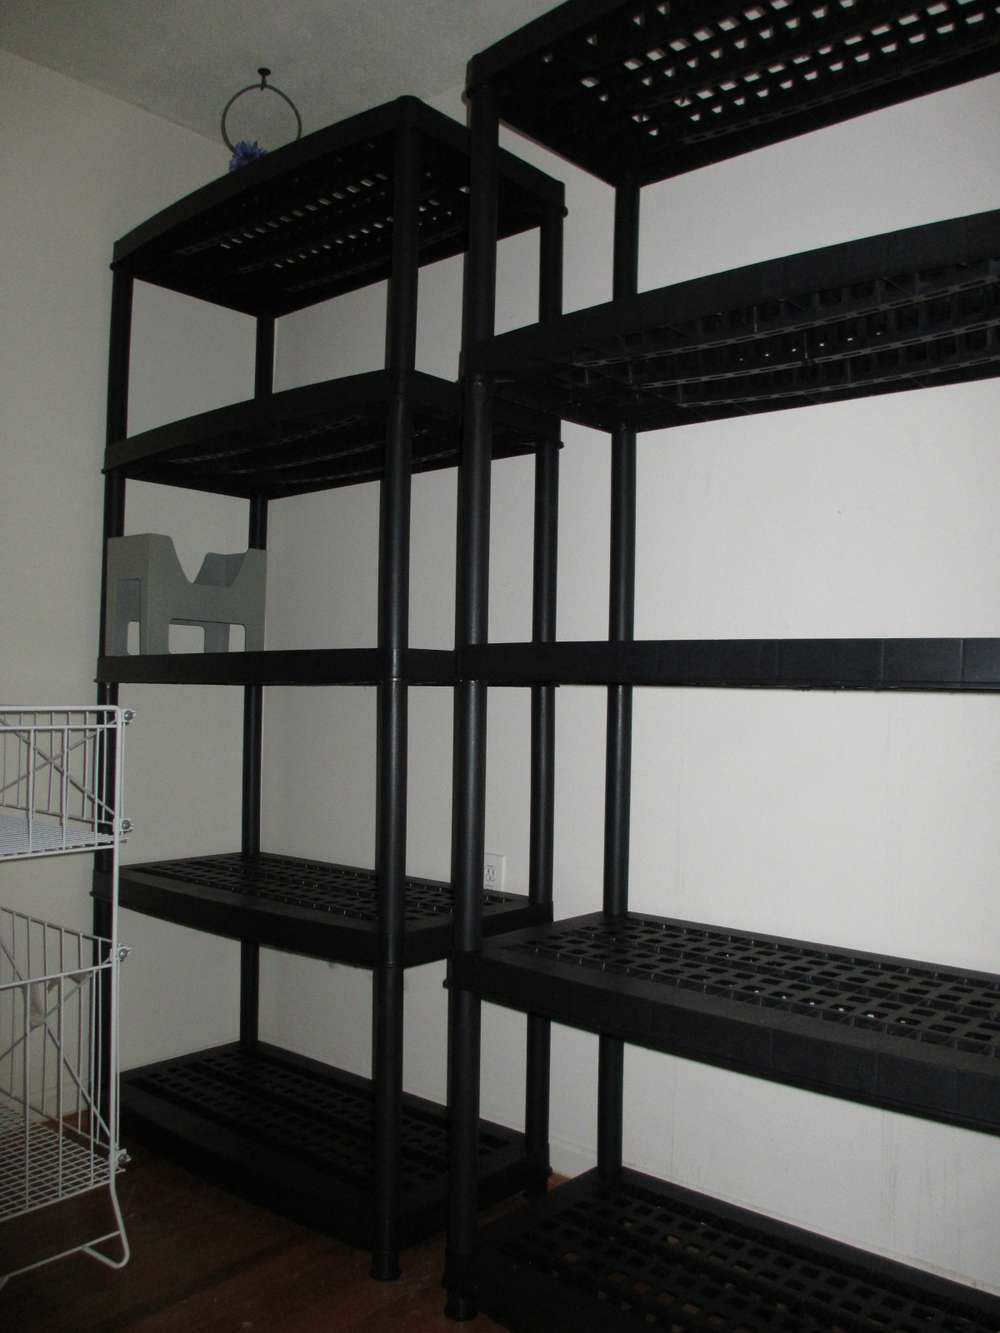 costco garage storage racks great deal on resin shelving units costco on ymmv 14103